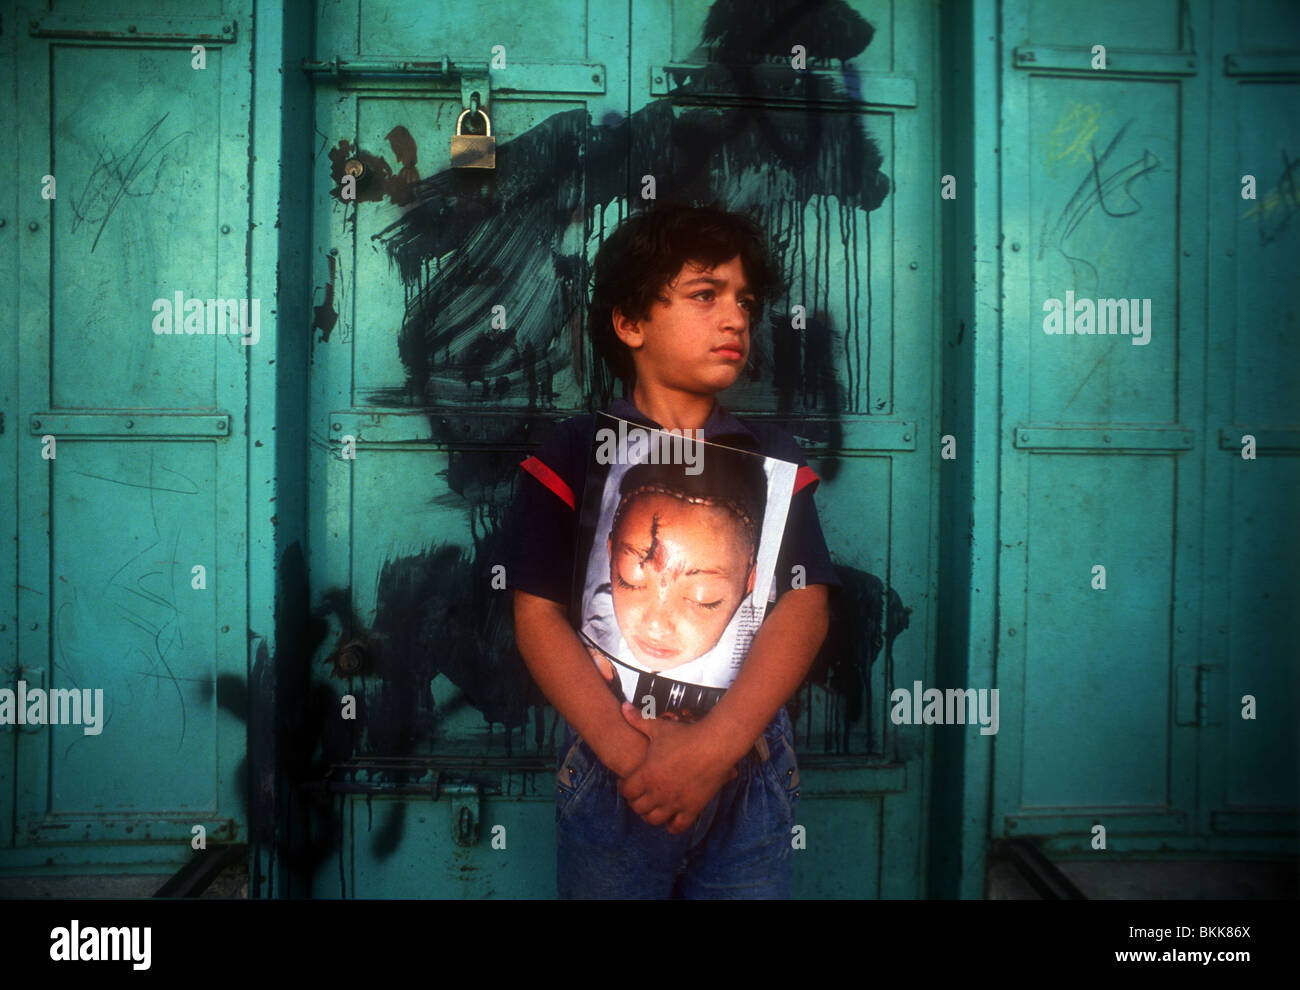 A portrait of Palestinian boy in the Gaza Strip holding a photograph of his sister killed in the intifada war. - Stock Image